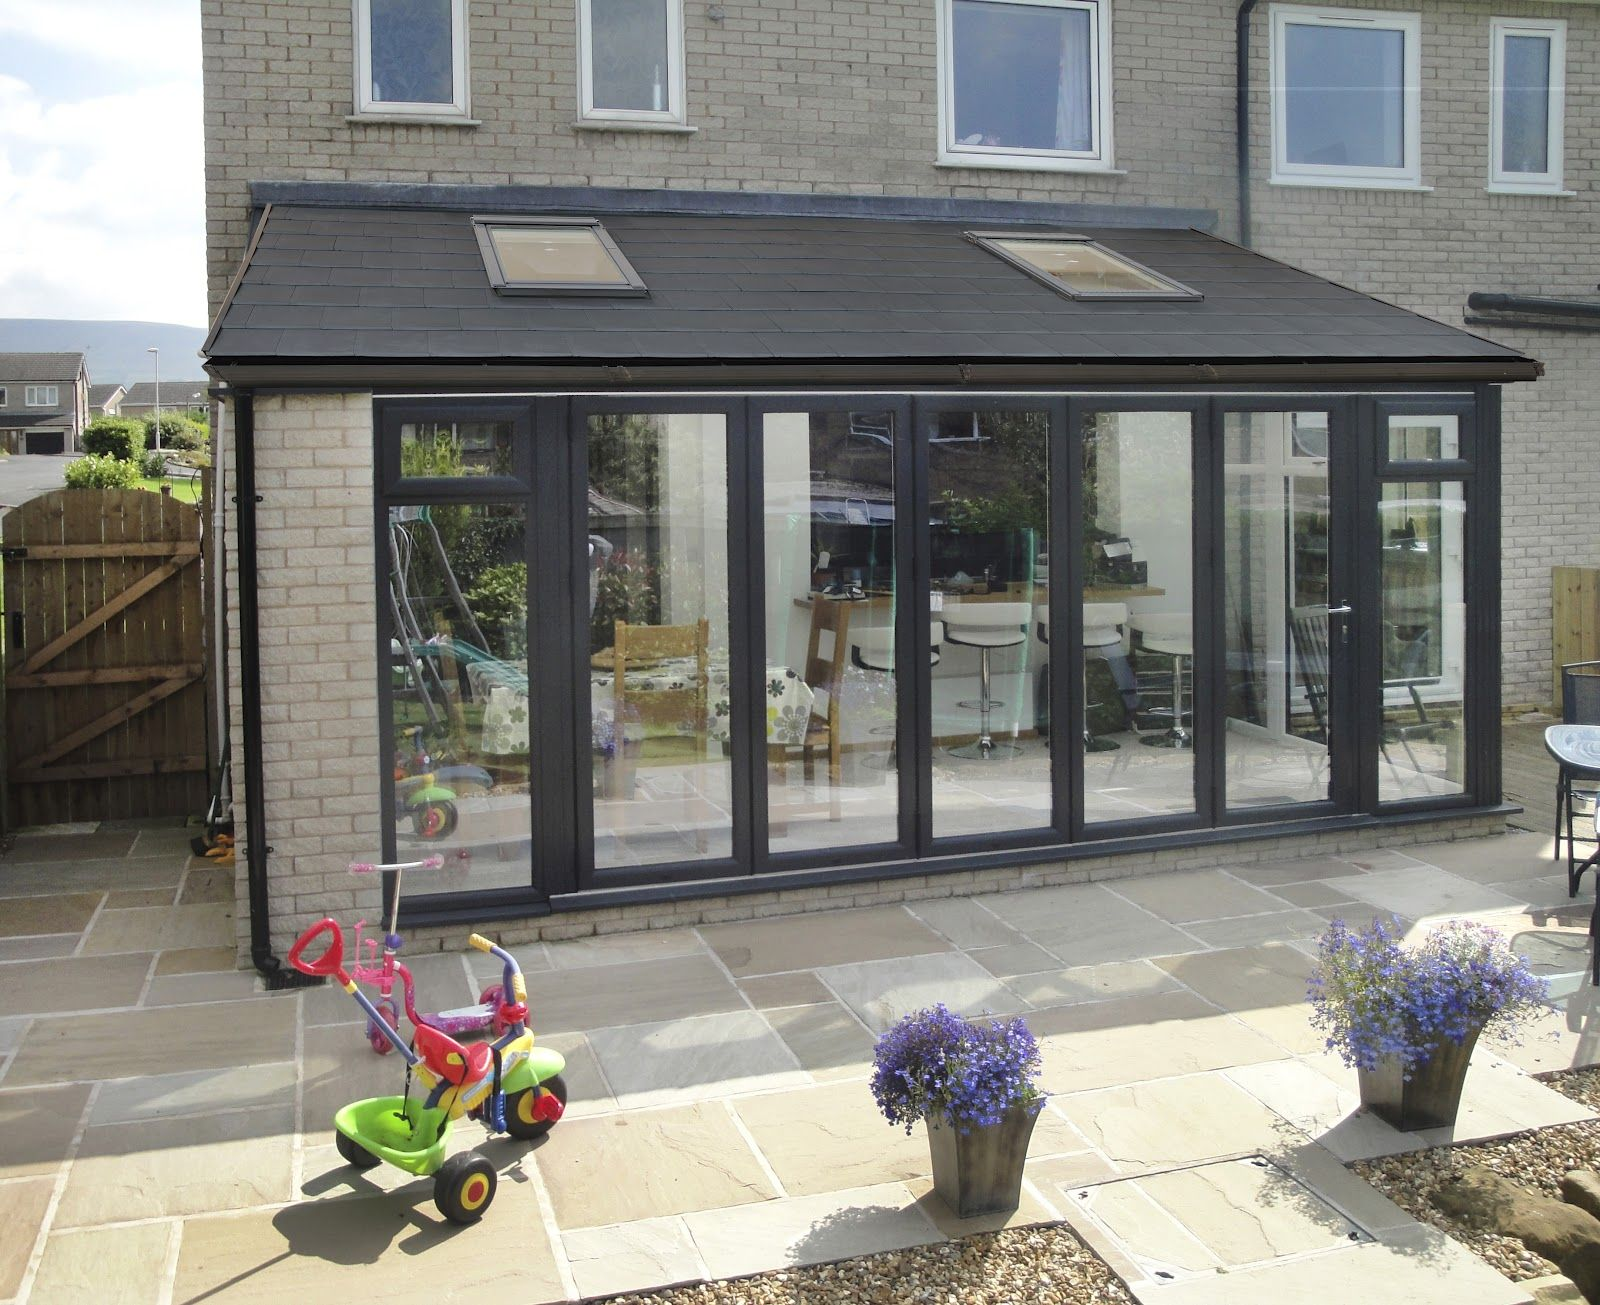 attractive Room Extension Ideas Part - 4: Images of Garden Room Extension Ideas - Patiofurn Home Design Ideas